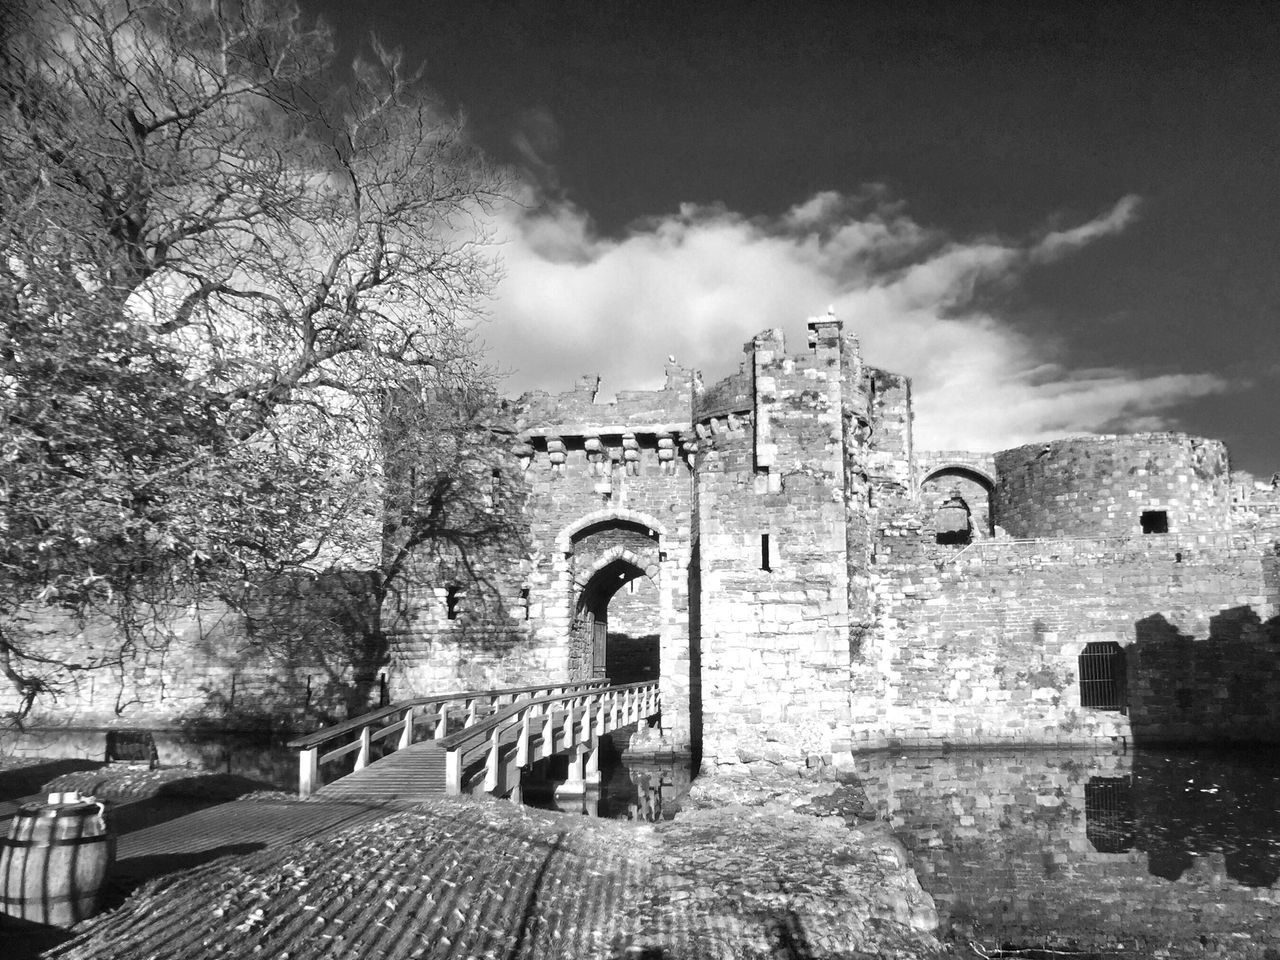 Old Ruin History Castle Streetphotography Street Photography Blackandwhite Black And White Monochrome JoMo Photo Streetphoto_bw IPhoneography Water Outdoors Tree Sky Architecture Religion No People Day